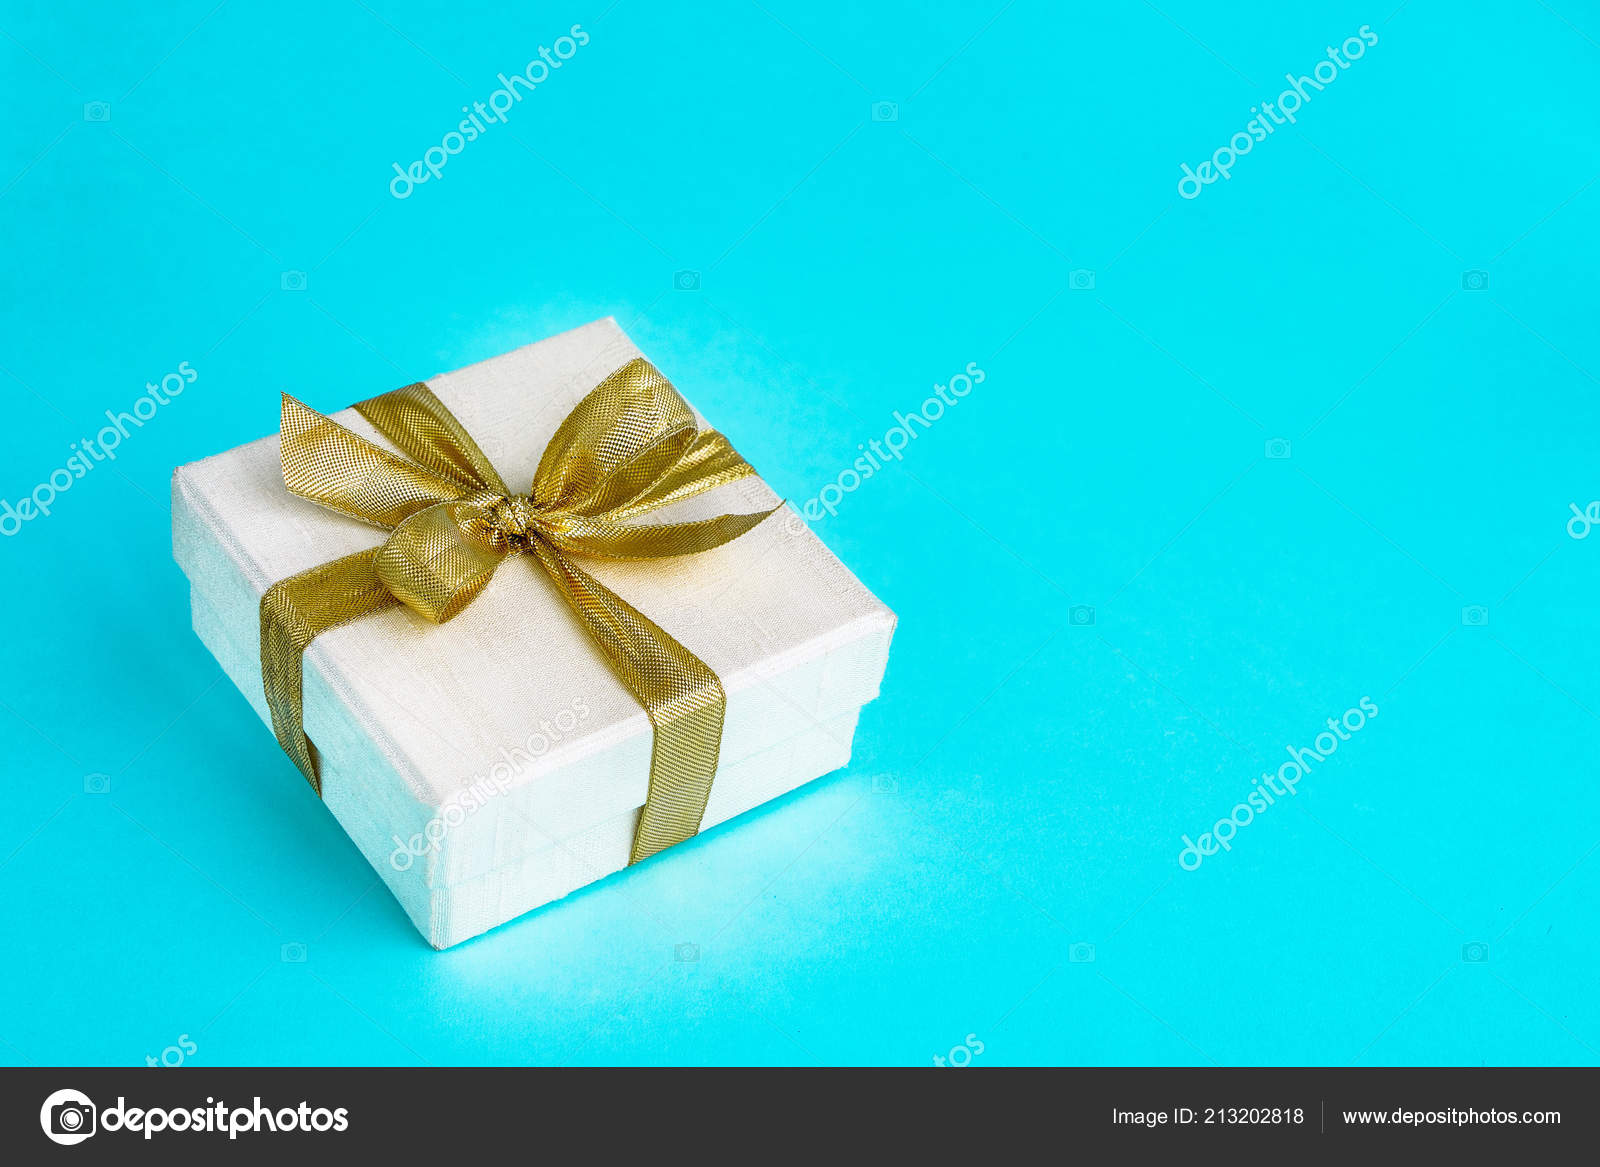 Gift Or Present Box Decorated With Golden Ribbon On Blue Background Top View Copy Space Birthday Mothers Day Wedding Valentine Concept